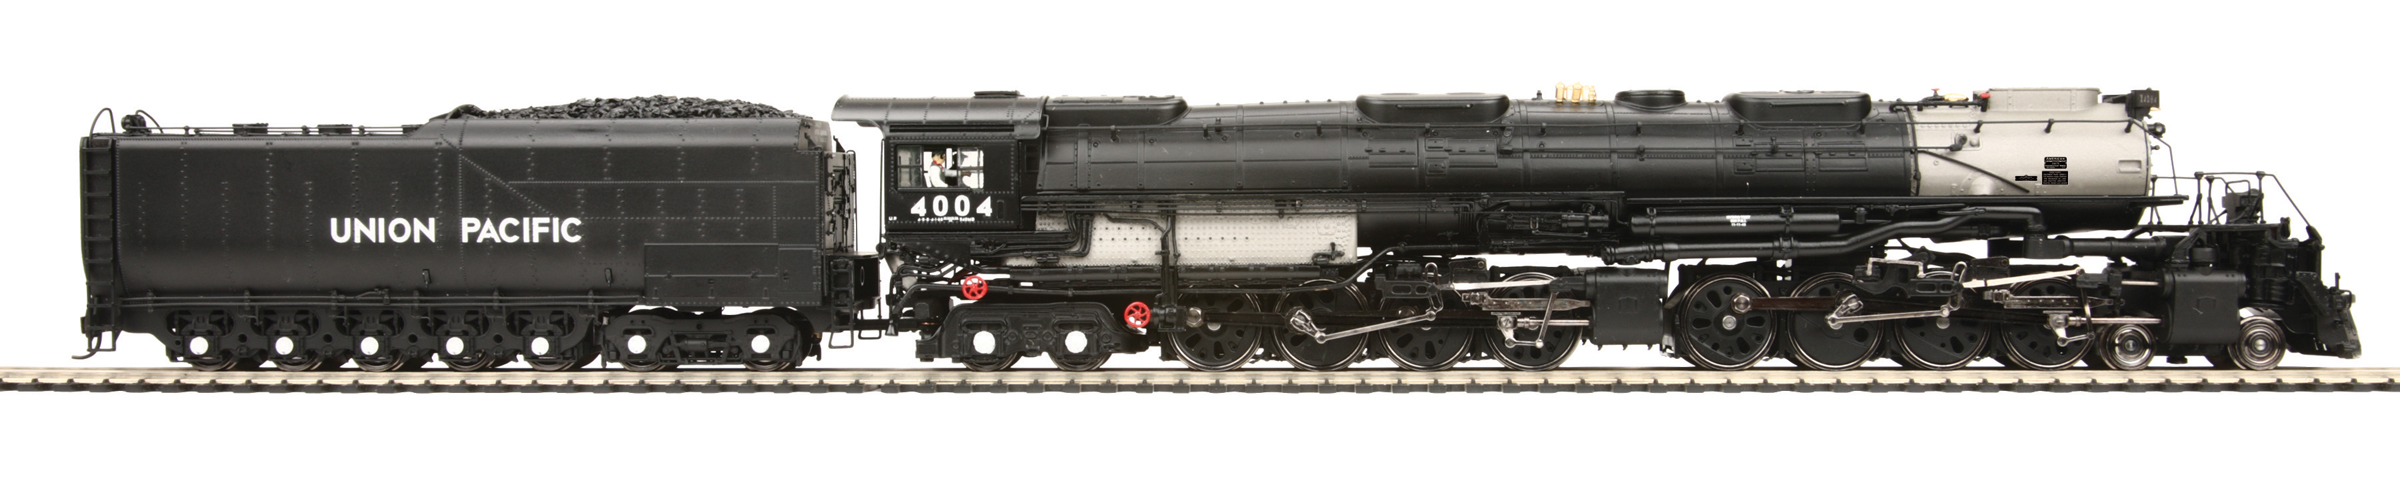 MTH 80-3280-1 4-8-8-4 Big Boy (Modified) Proto Sound 3.0 and DCC Union Pacific 4004